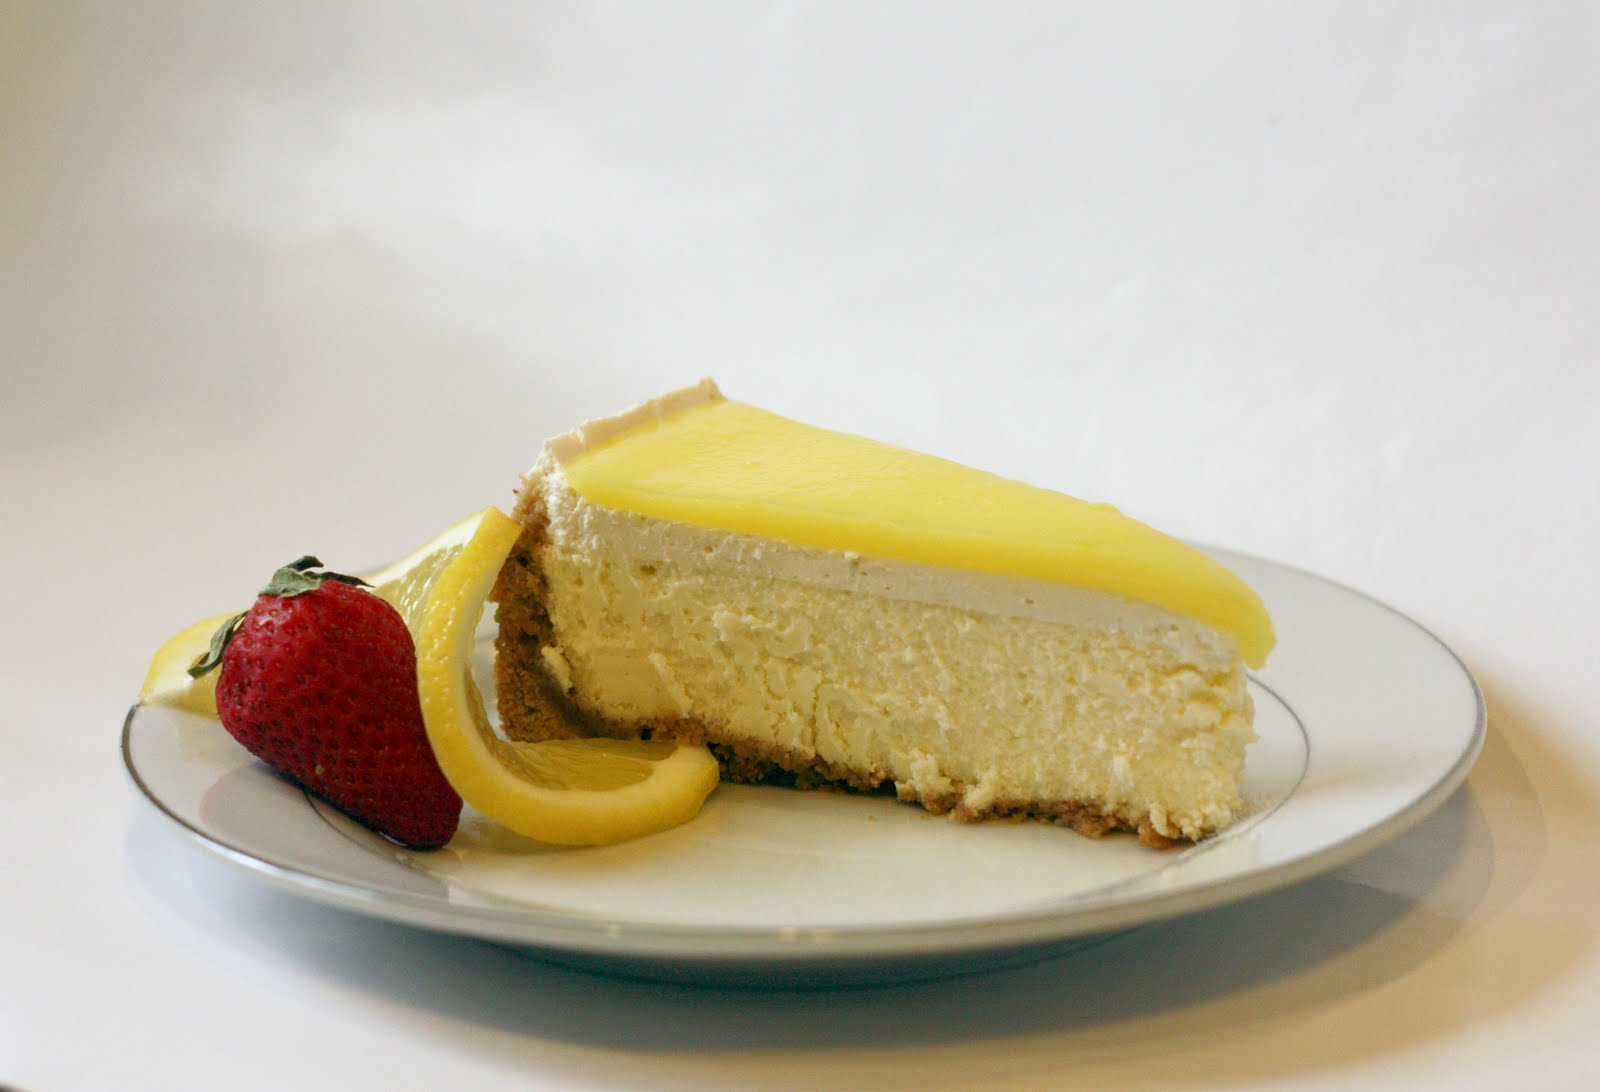 LEMON CHEESECAKE (Adapted from Chowhound and Food.com )